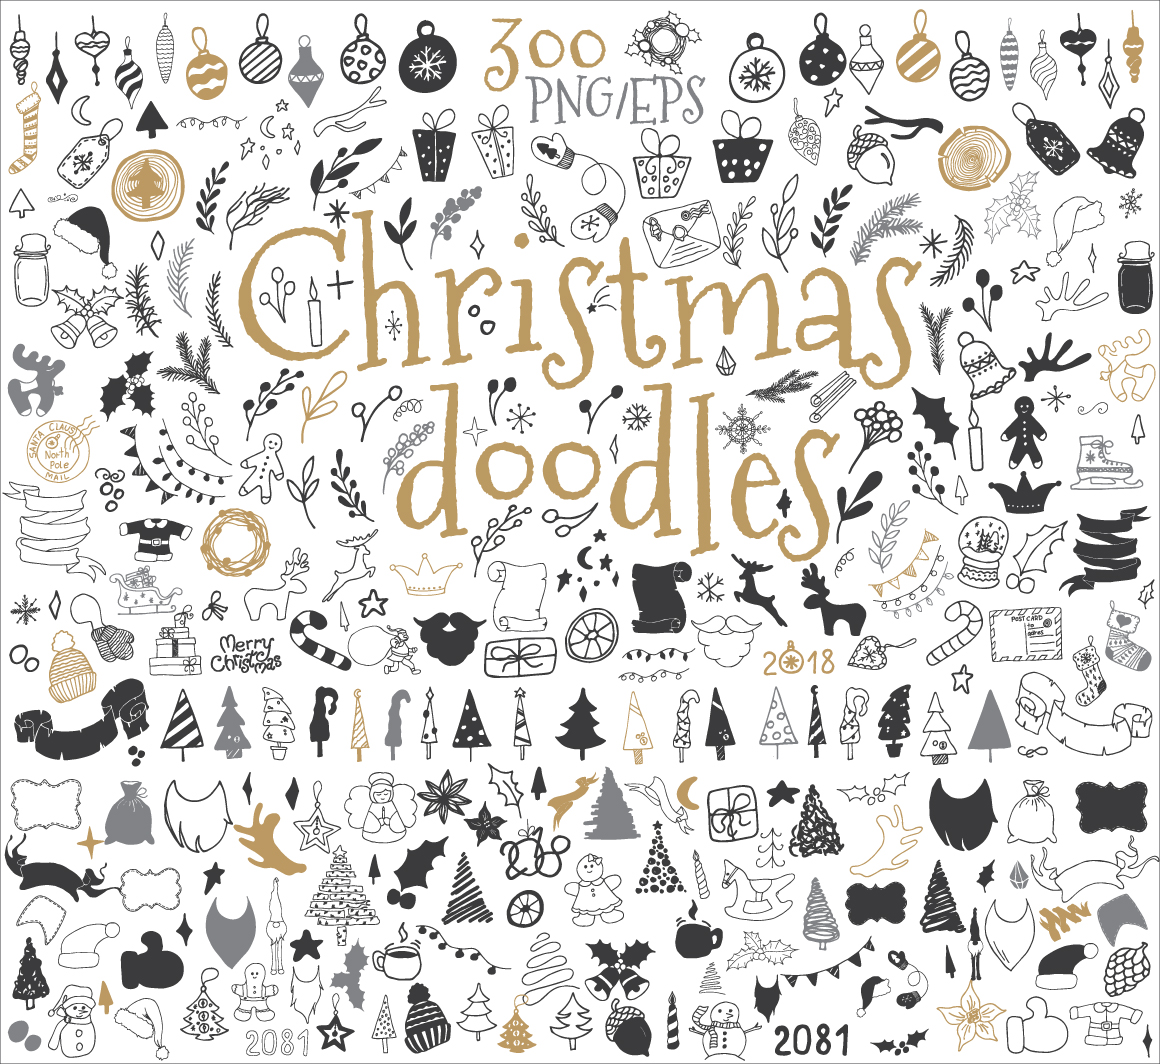 Doodle clipart graphic design. Christmas icons and